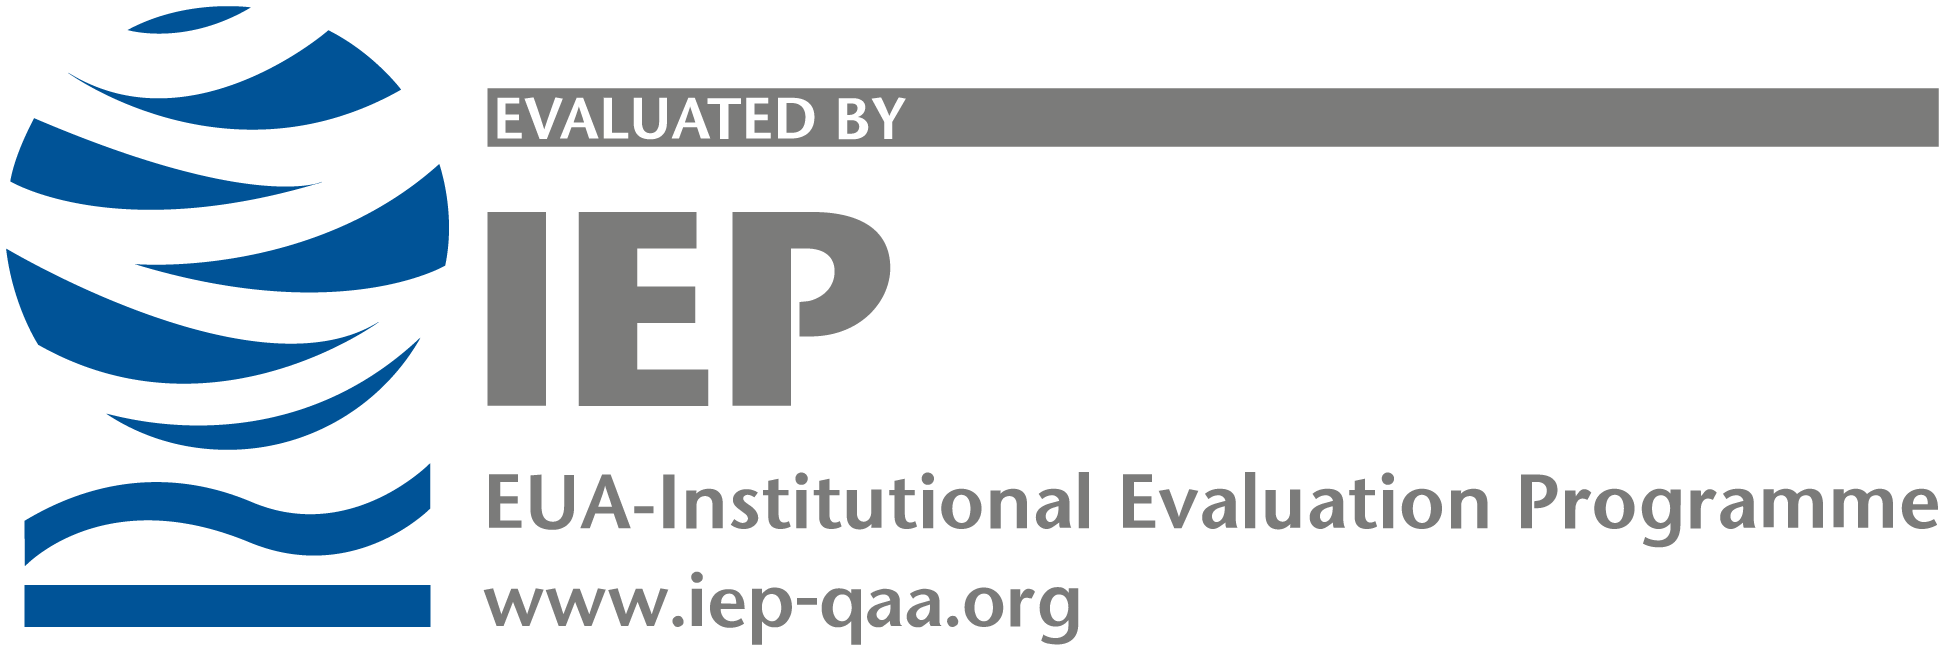 IEP EUA-Institutional Evaluation Progpramme